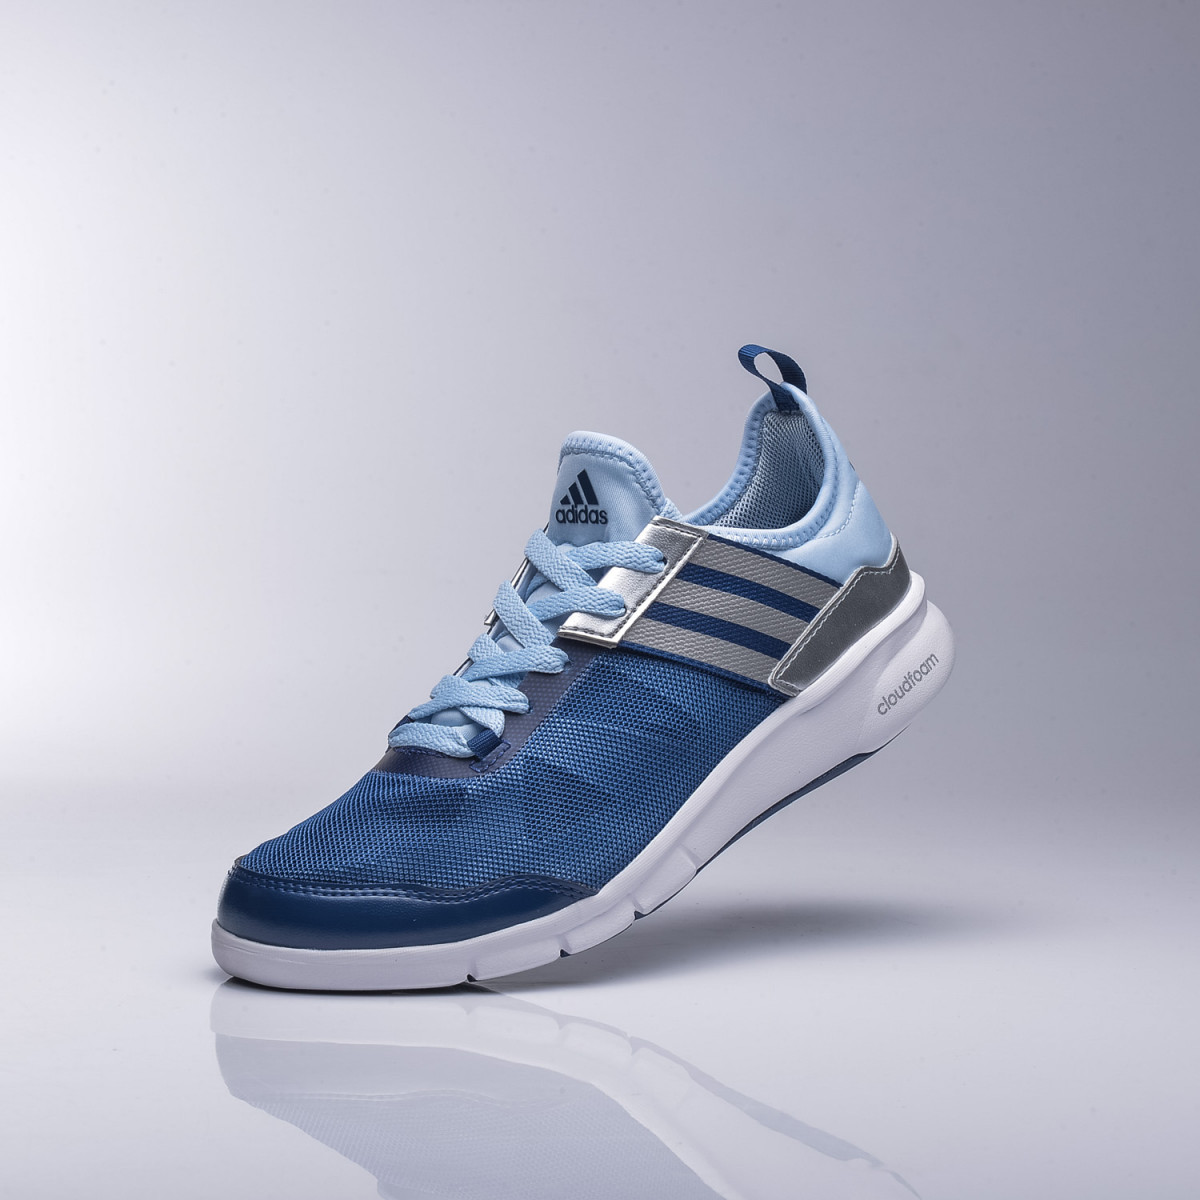 innovative design e49f8 8d6c8 Zapatillas Adidas Niya Cloudfoam